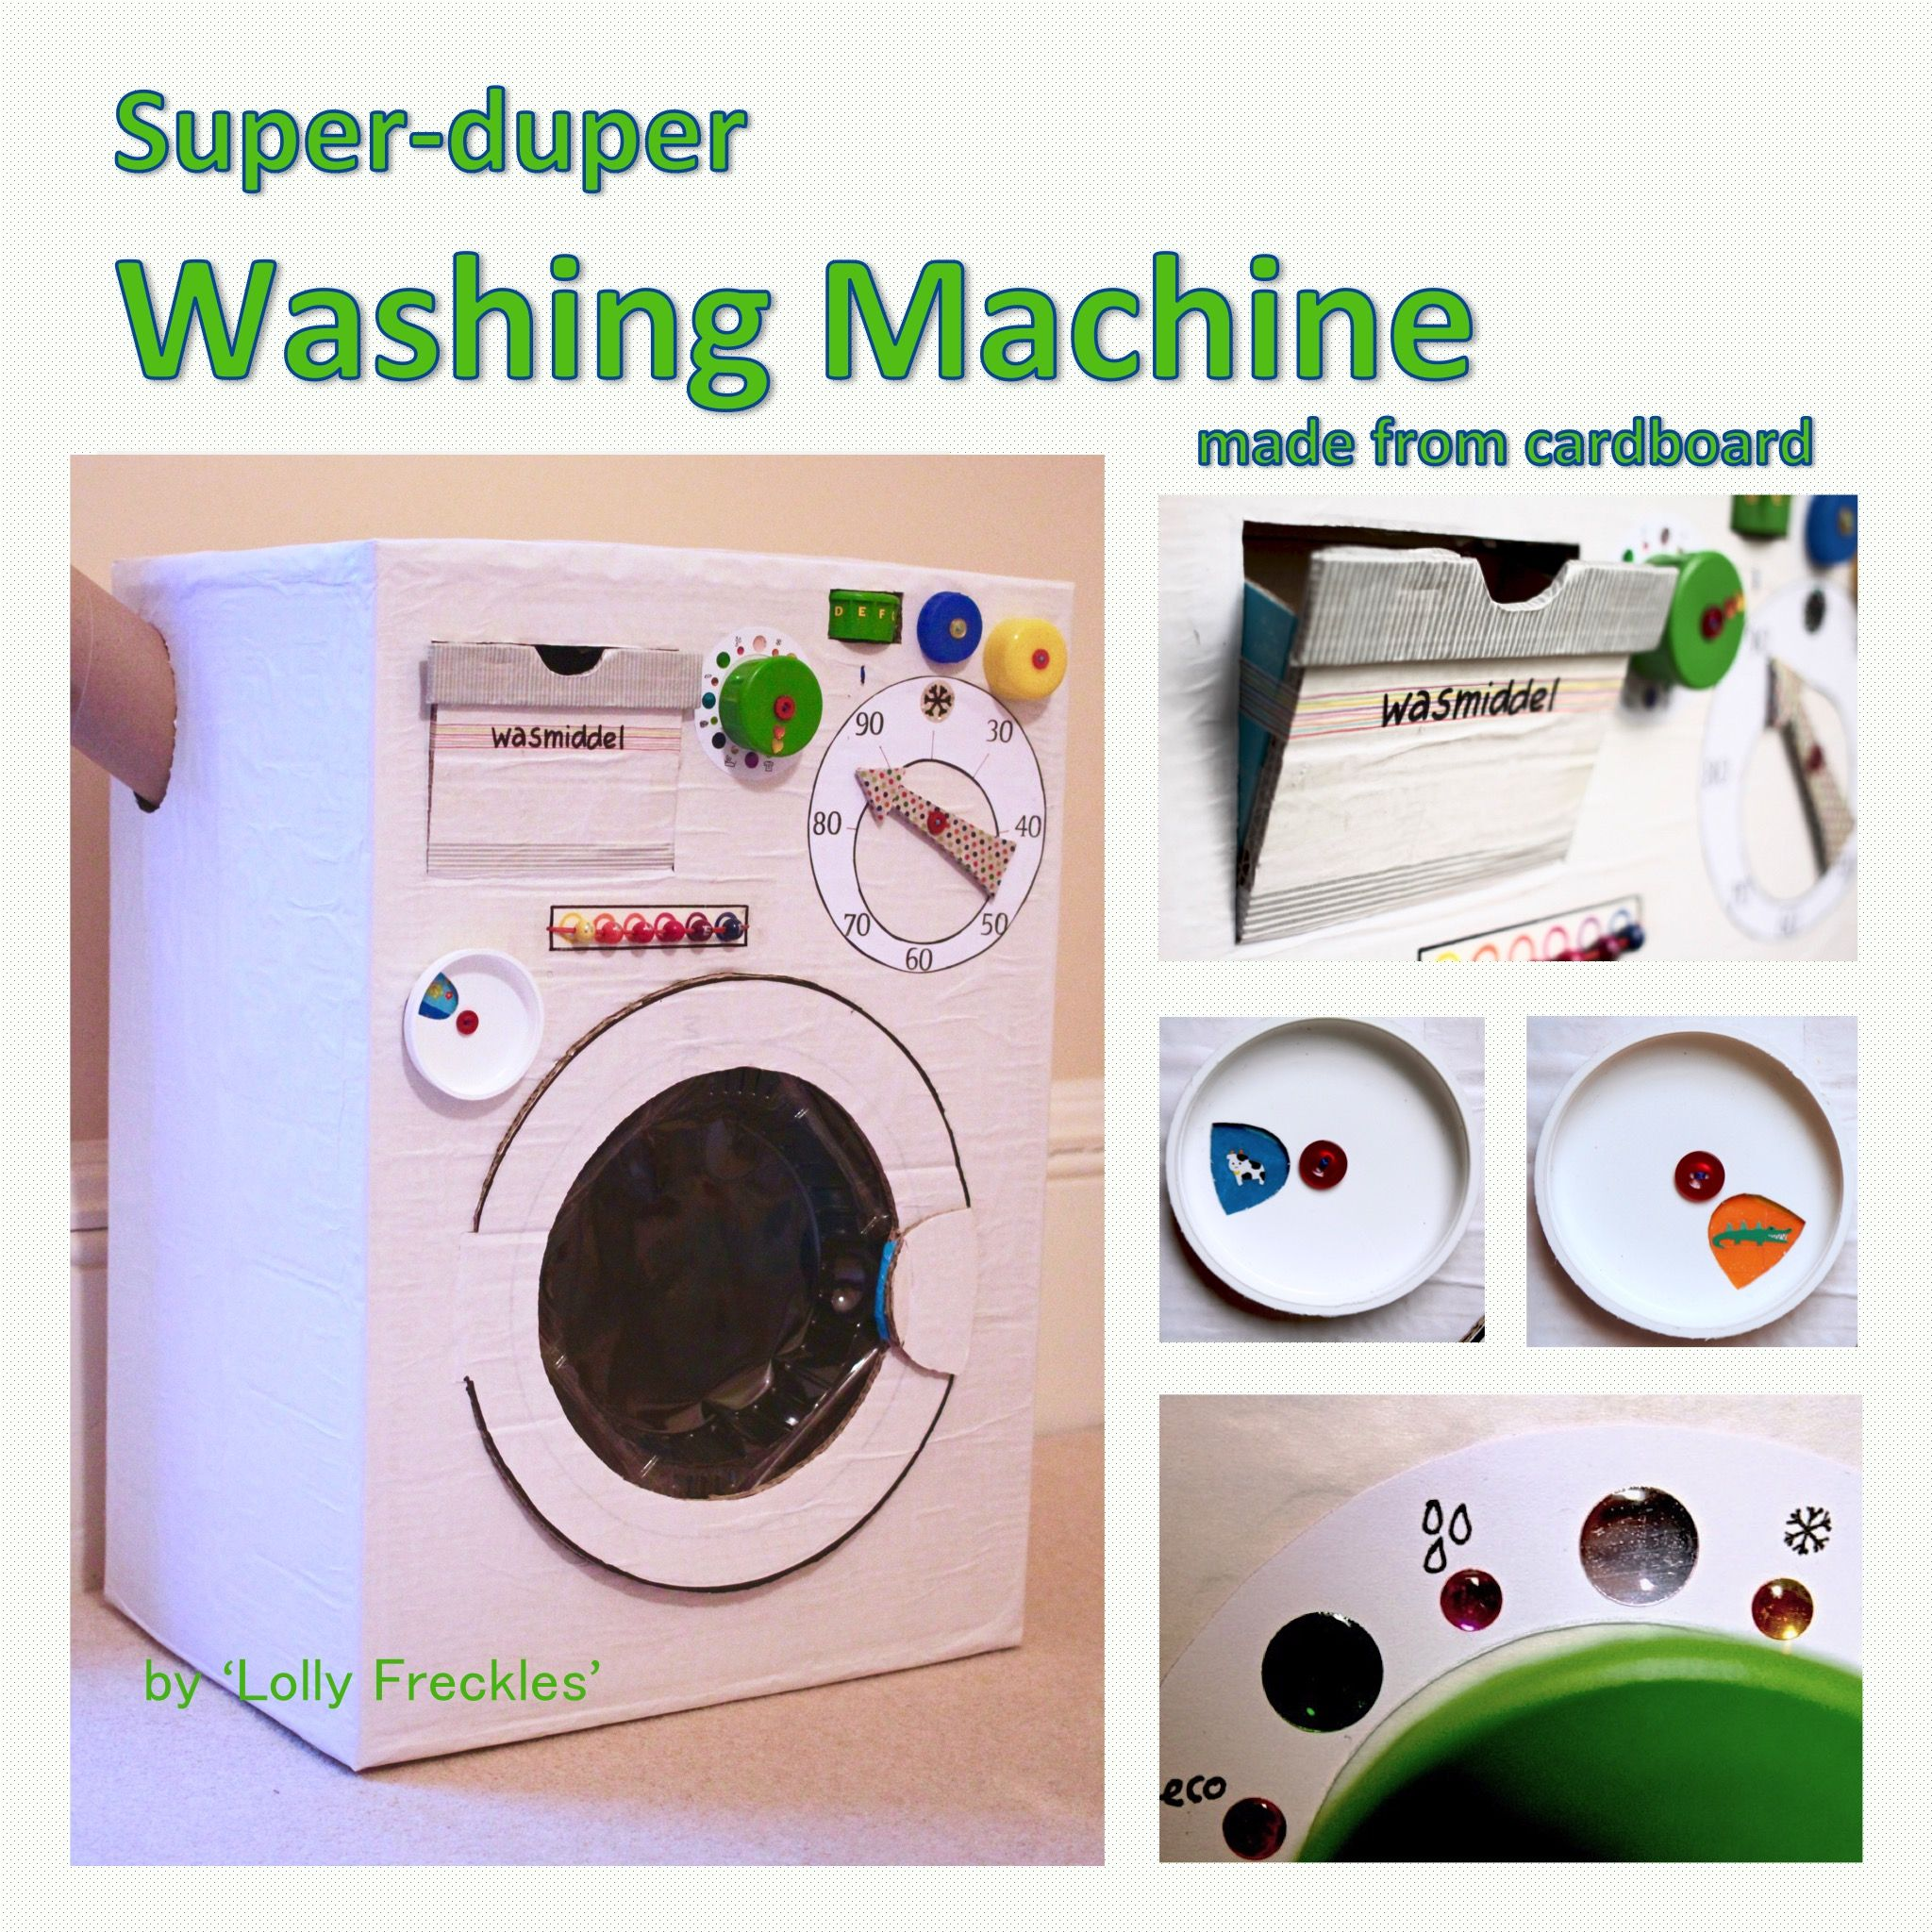 Washing Machine Made From A Cardboard Box With Dials Made From